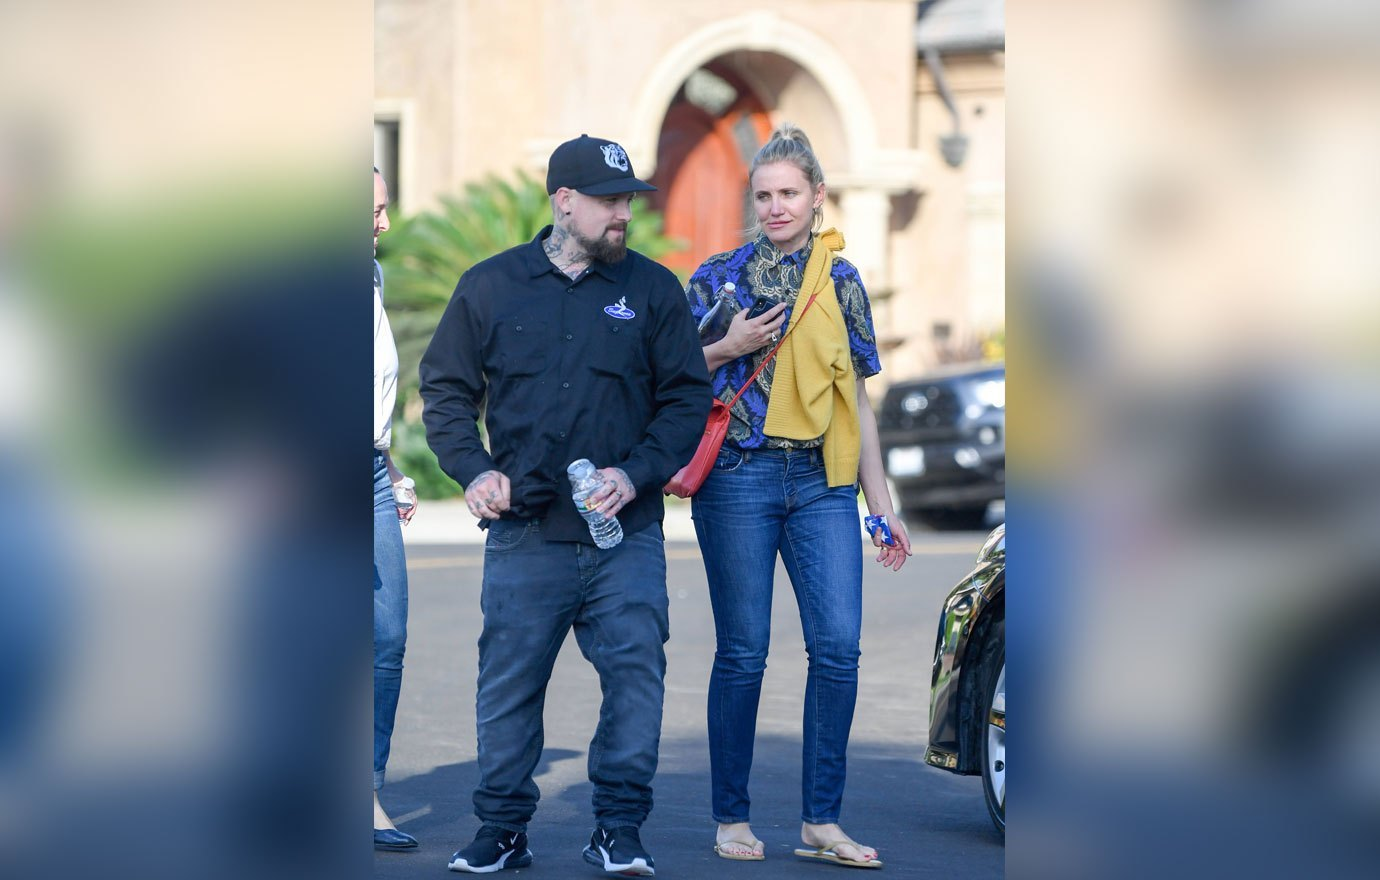 EXCLUSIVE: Cameron Diaz and Benji Madden leave a party thrown in her honor